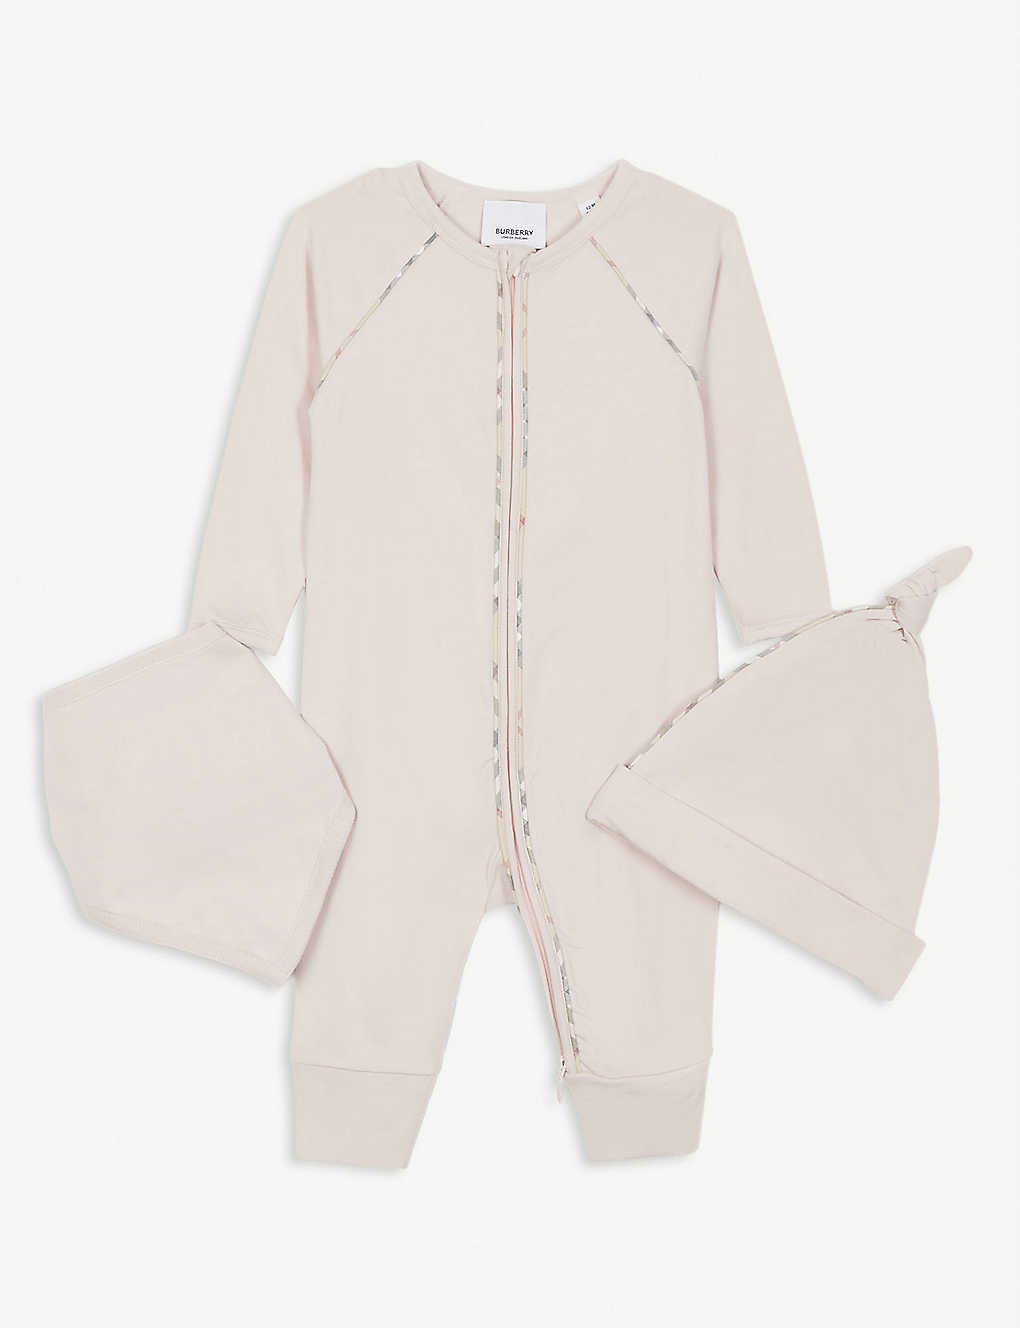 BURBERRY: Dixie cotton babygrow, hat and bib set 1-18 months